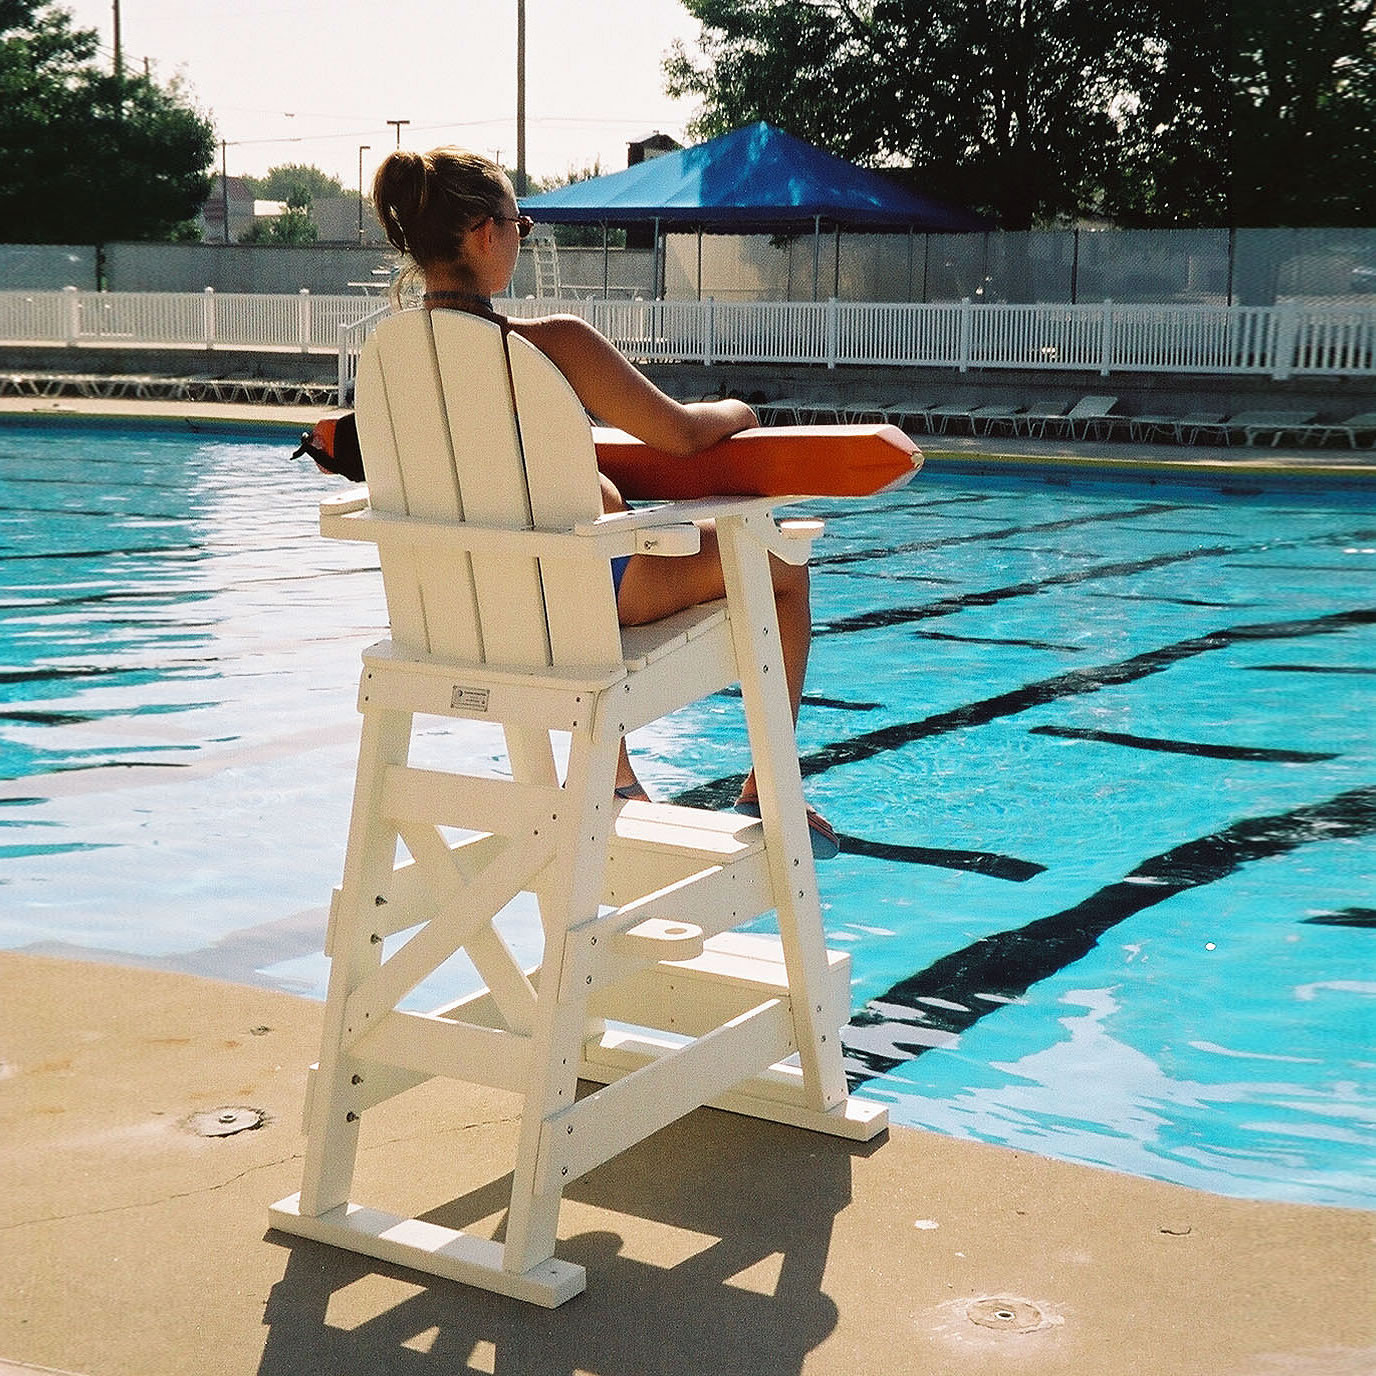 Attractive Tailwind LG510 Lifeguard Chair